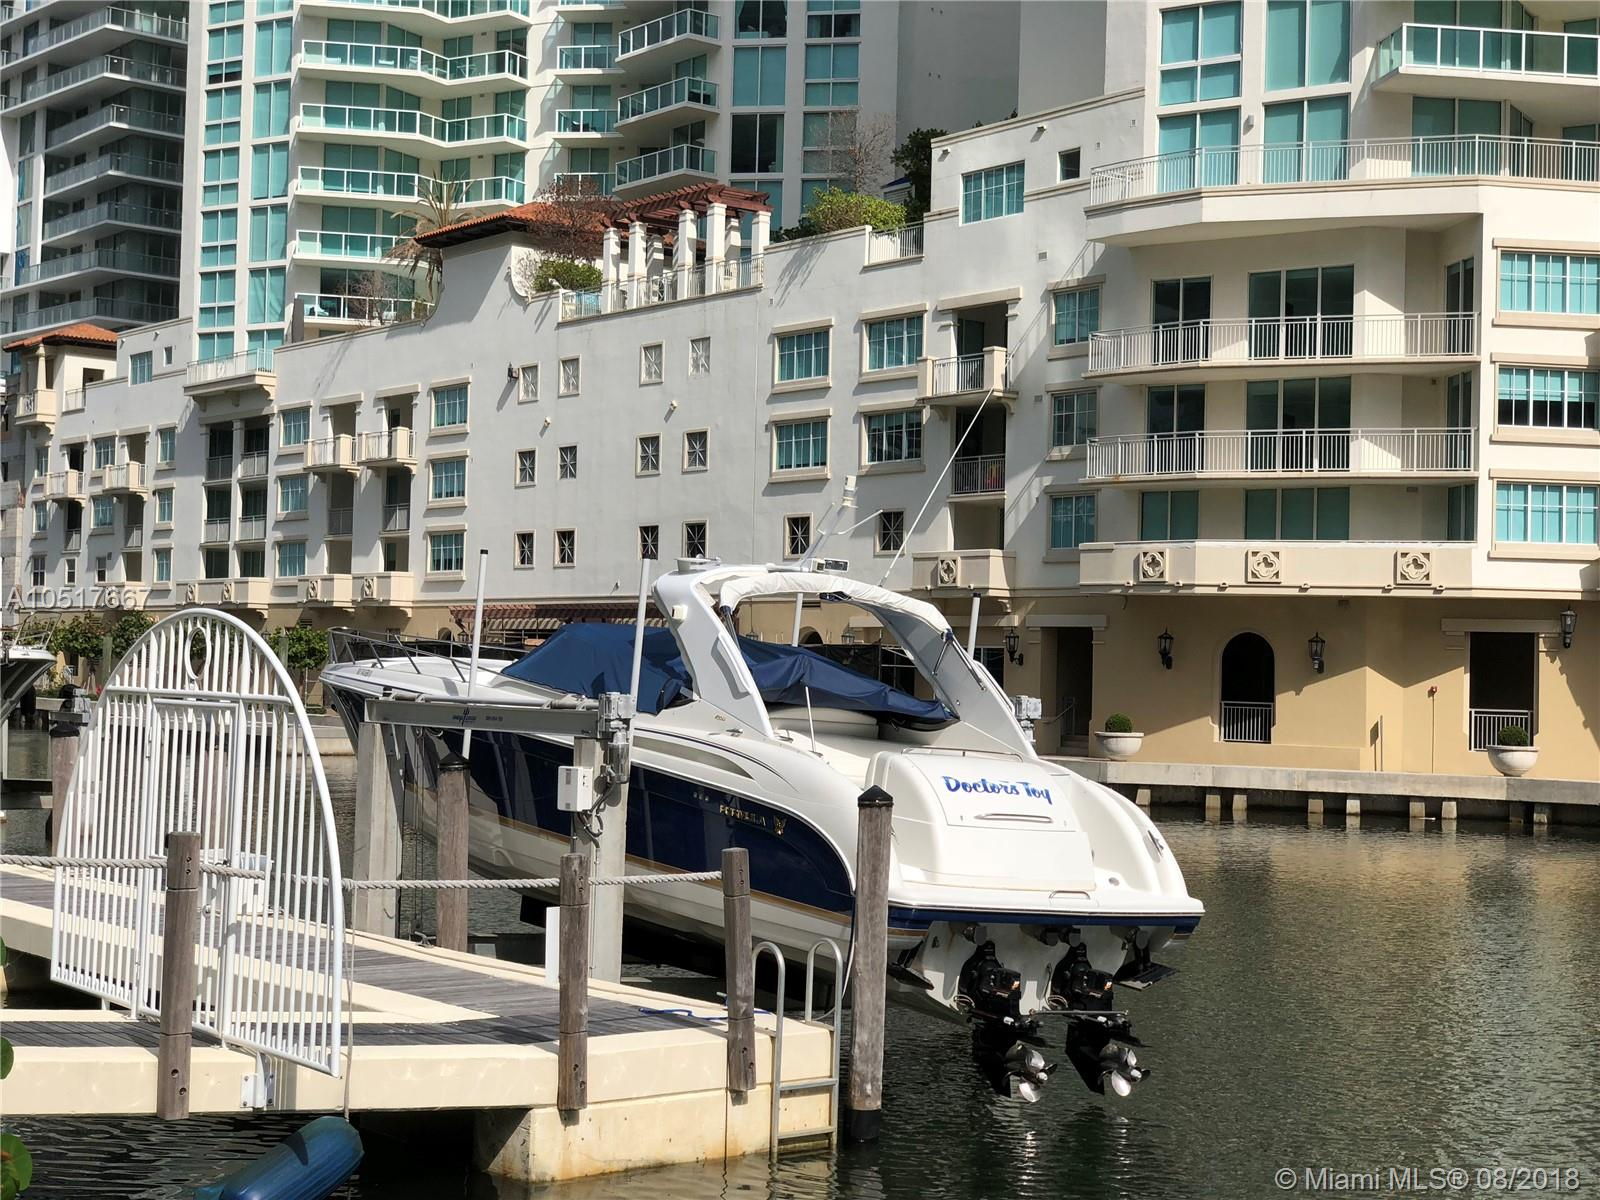 Very desirable 60 feet boat dock for sale, 5 minutes from Haulover Sandbar, easy access to the ocean, no fixed bridges, 3 restaurants around the corner where you can dock your boat. Very safe corner location, across from the entrance of Oceania 4 building. The boat lift and 2 piles were recently removed, but all the permits are in place for 20,000 lbs. lift that can be easily reinstalled. BUYER MUST HAVE RESIDENCY IN ONE OF 5 OCEANIA TOWERS.